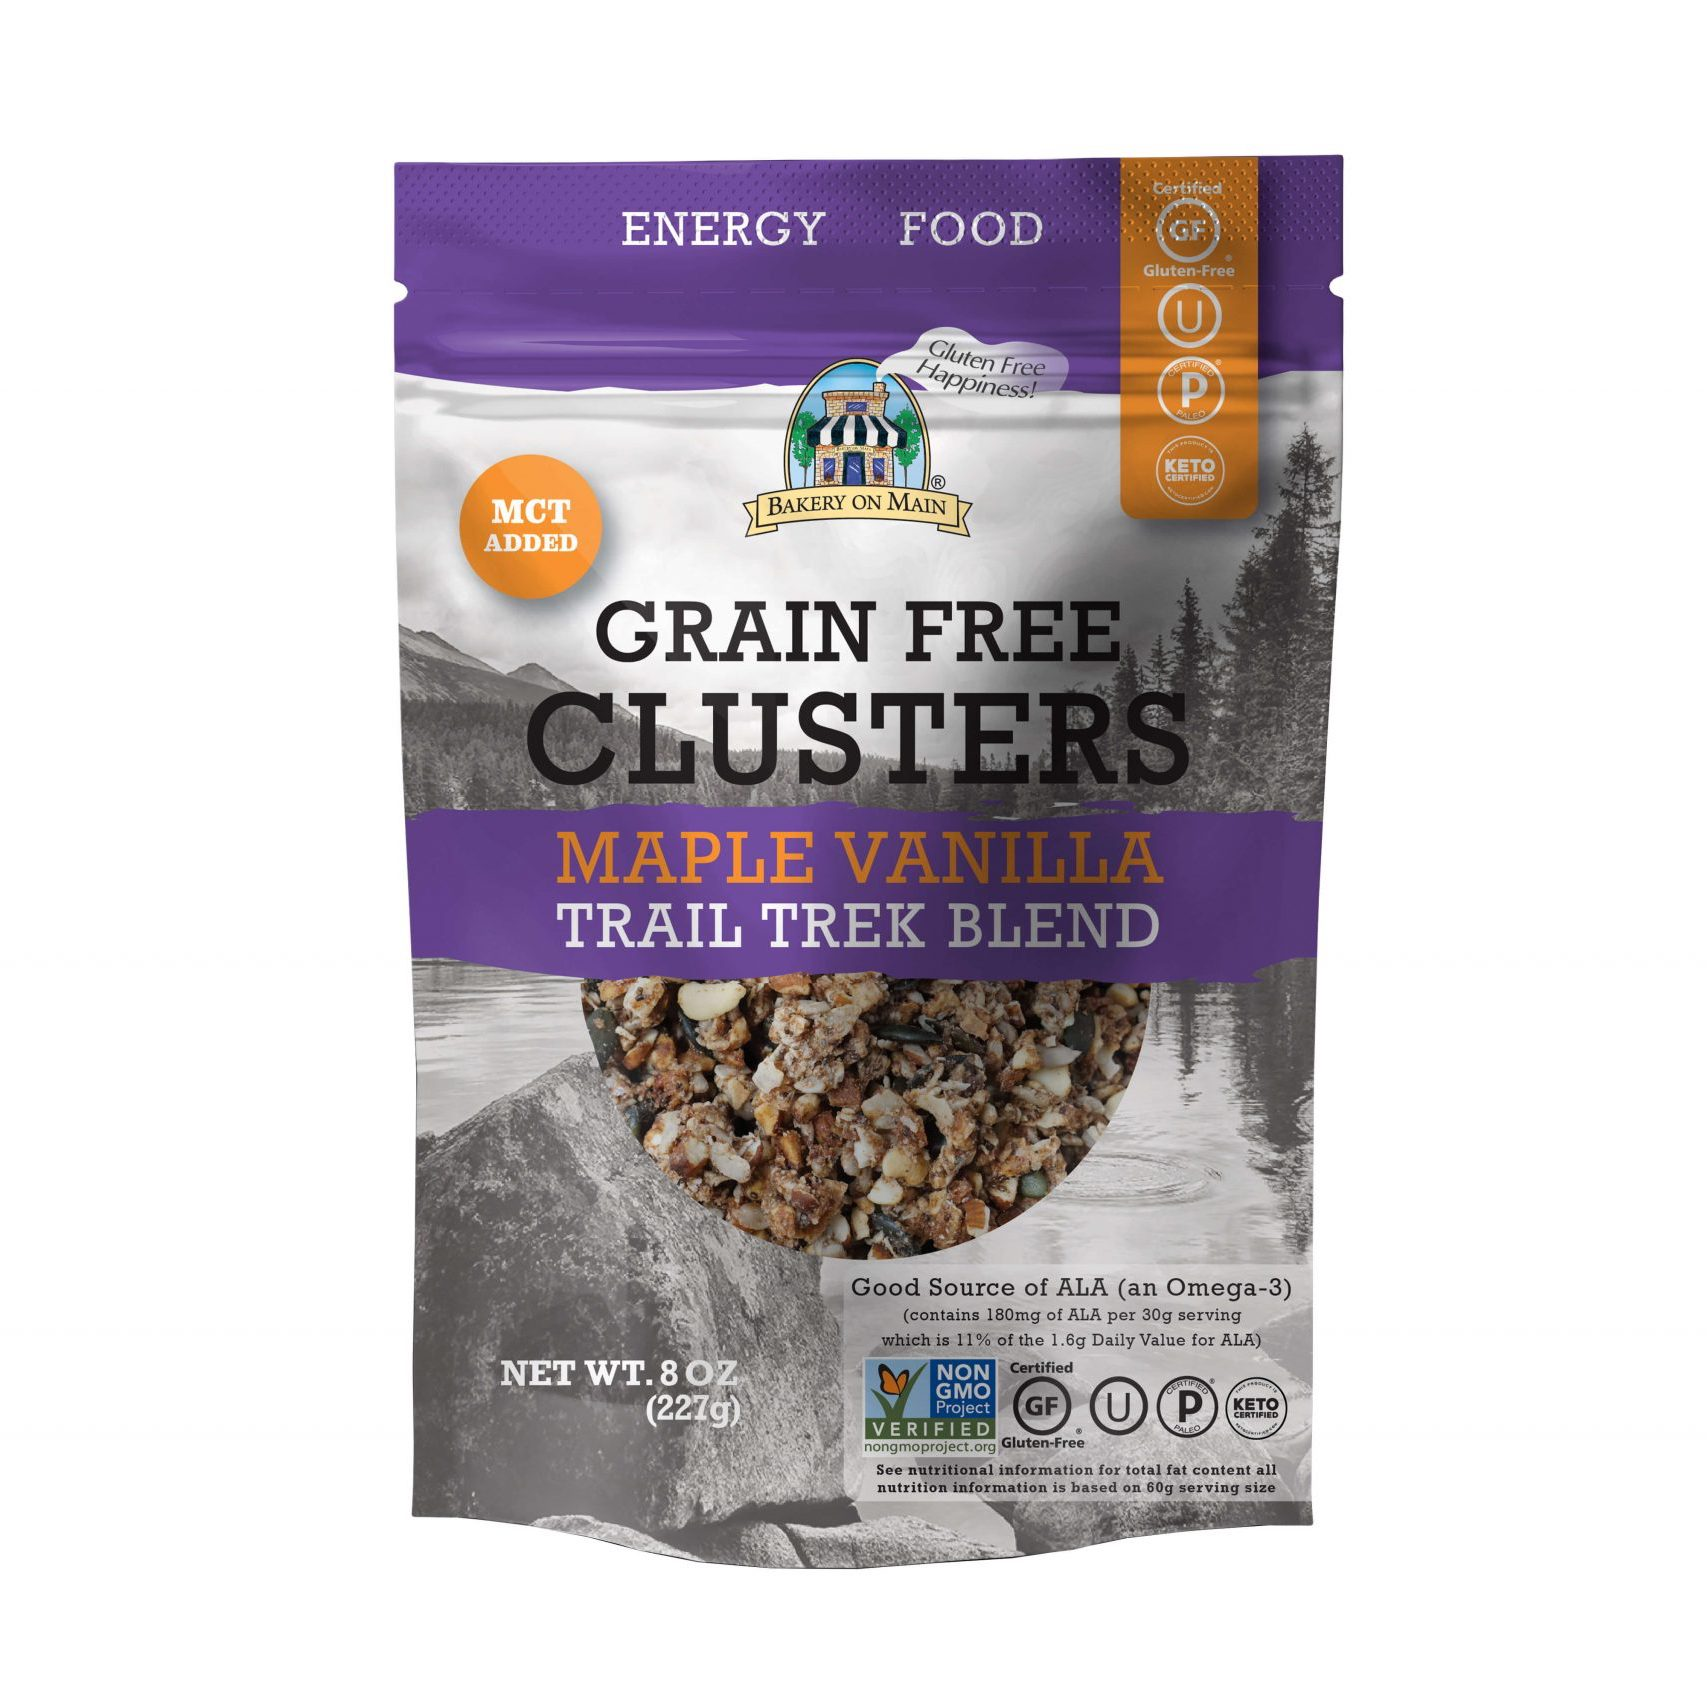 Grain-Free Clusters Maple Vanilla Trail Trek Blend - Bakery on Main - Keto Certified by the Paleo Foundation